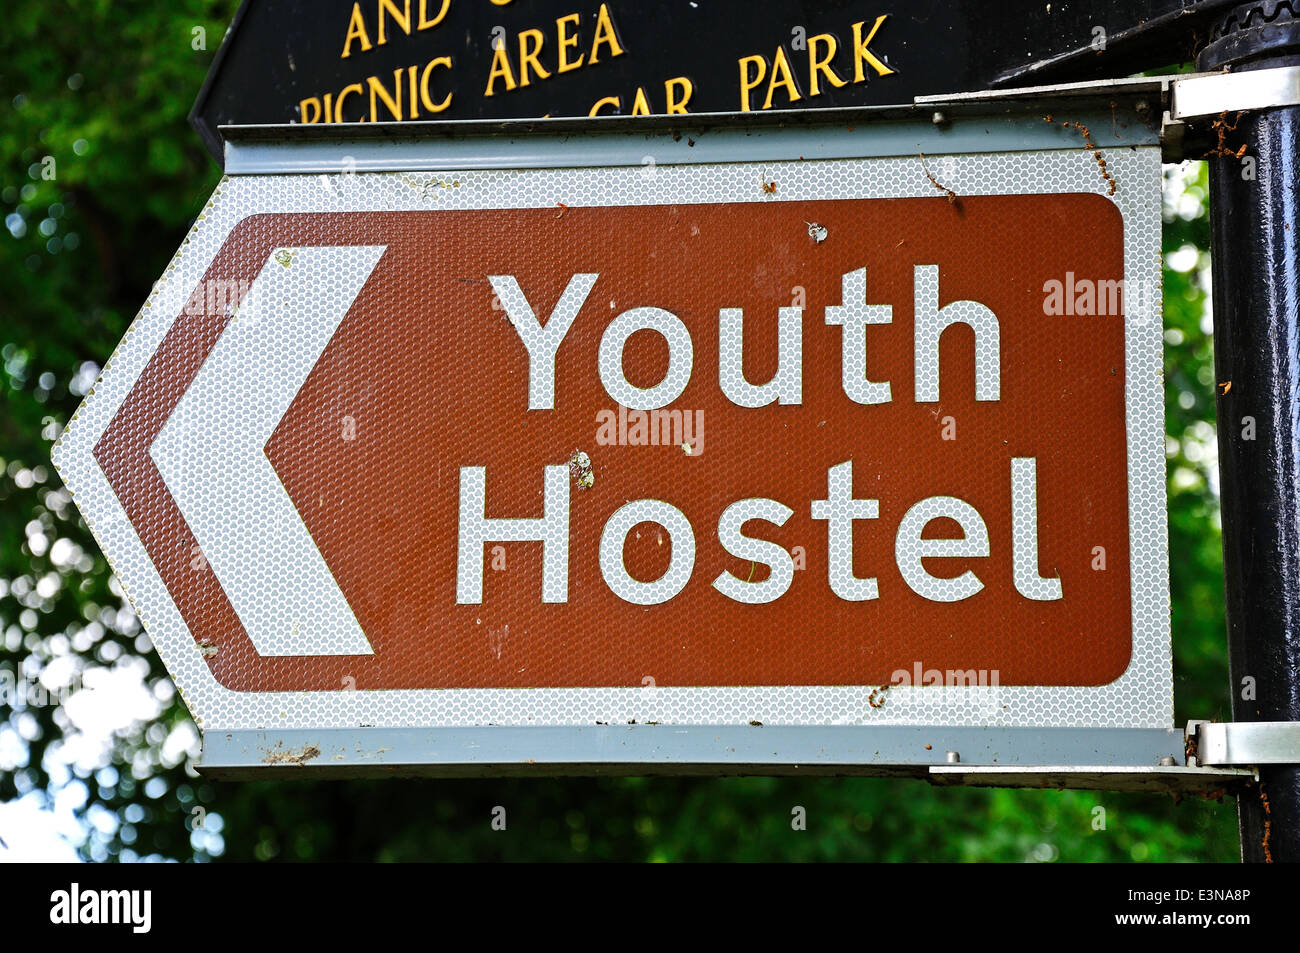 Youth hostel sign on a brown and white background, Leominster, England, UK. Stock Photo